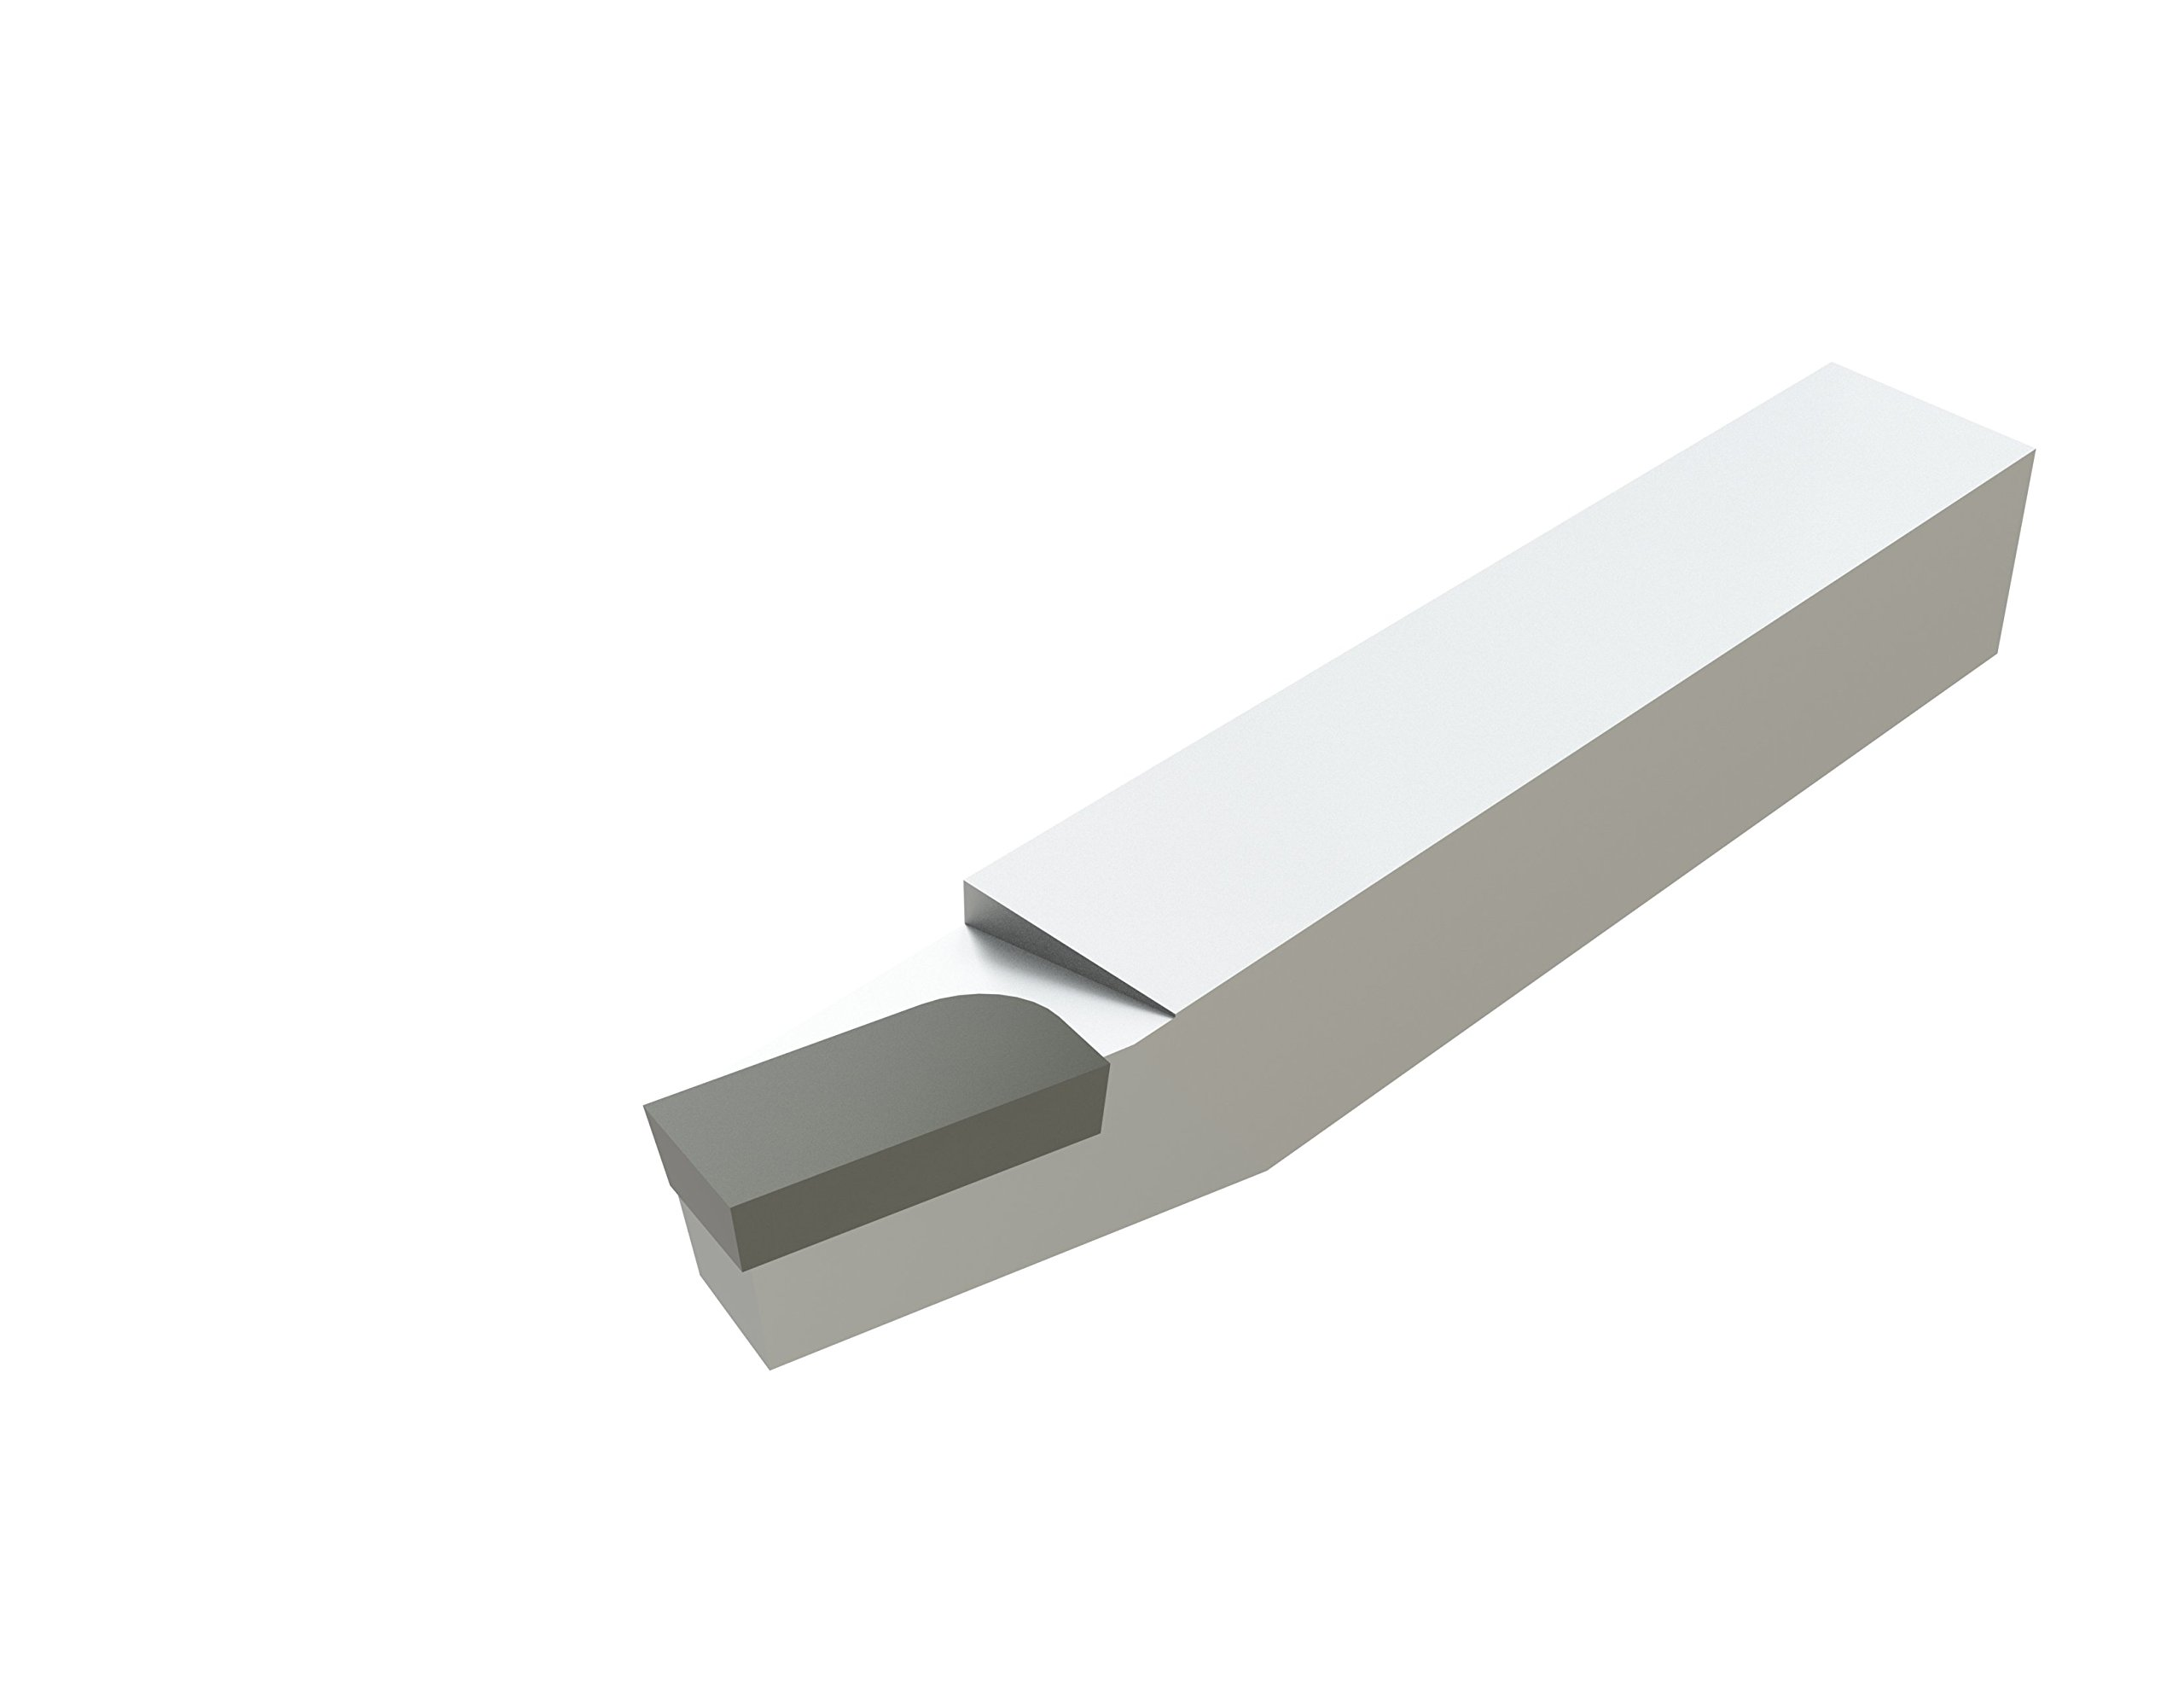 Micro 100 BR-6 Brazed Tool Right Hand Square Shank Diameter ''Style B'', 2.5'' Length, 3/8'' Width, 3/8'' Height, 1/8'' Thick, 1/4'' Width, 1/2'' Length, 1/64'' Radius